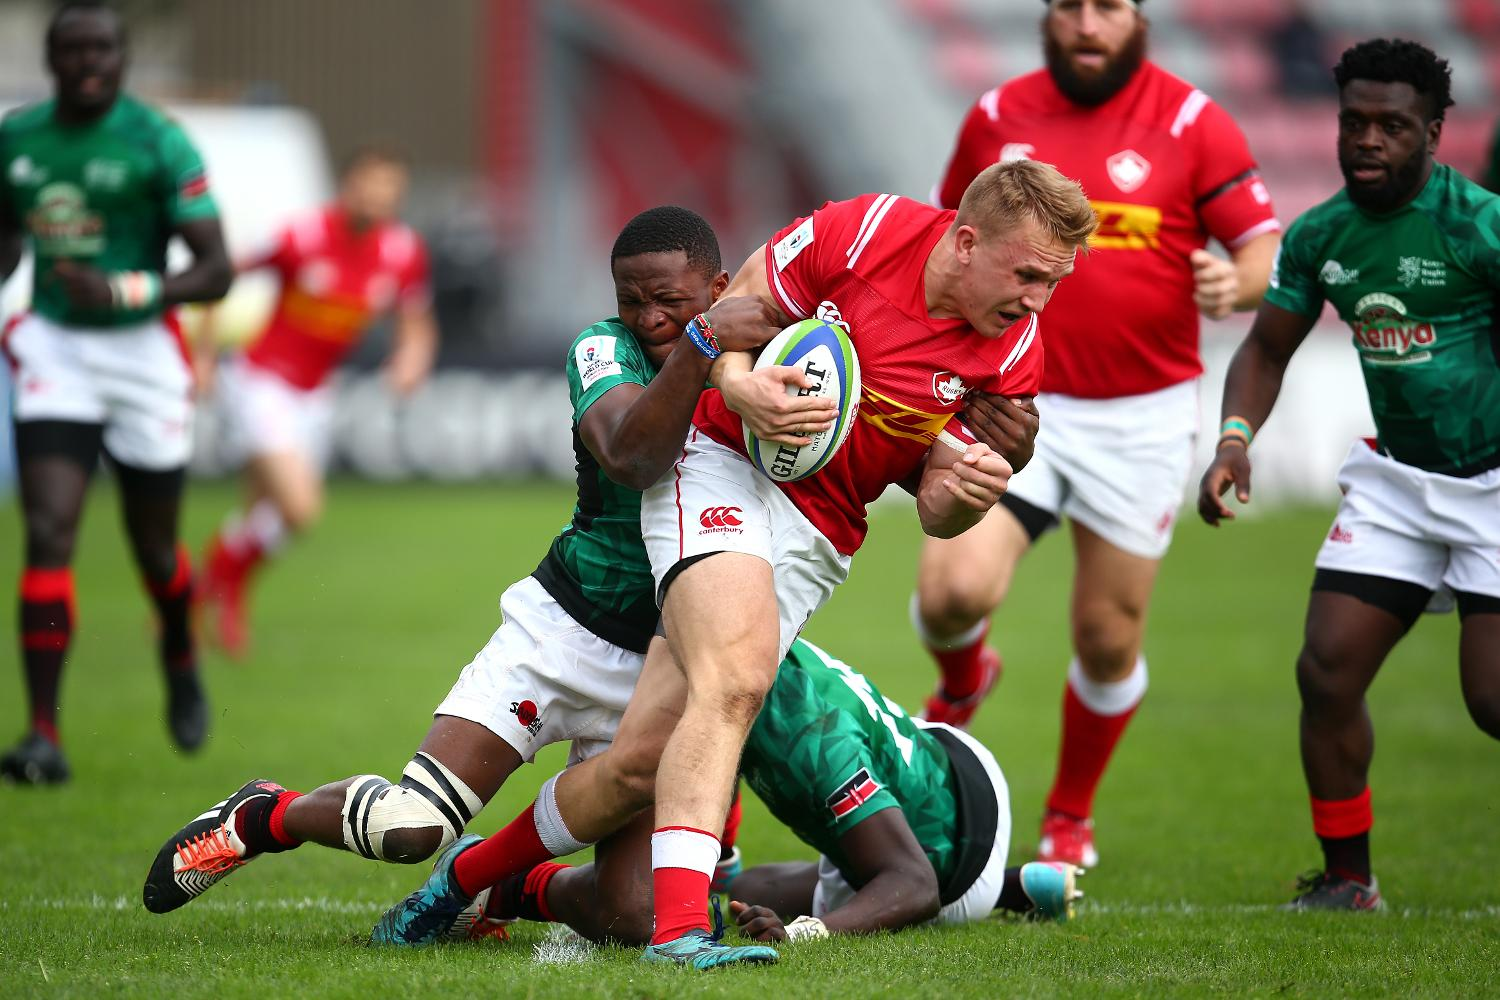 Rugby World Cup 2019 Repechage - Canada v Kenya